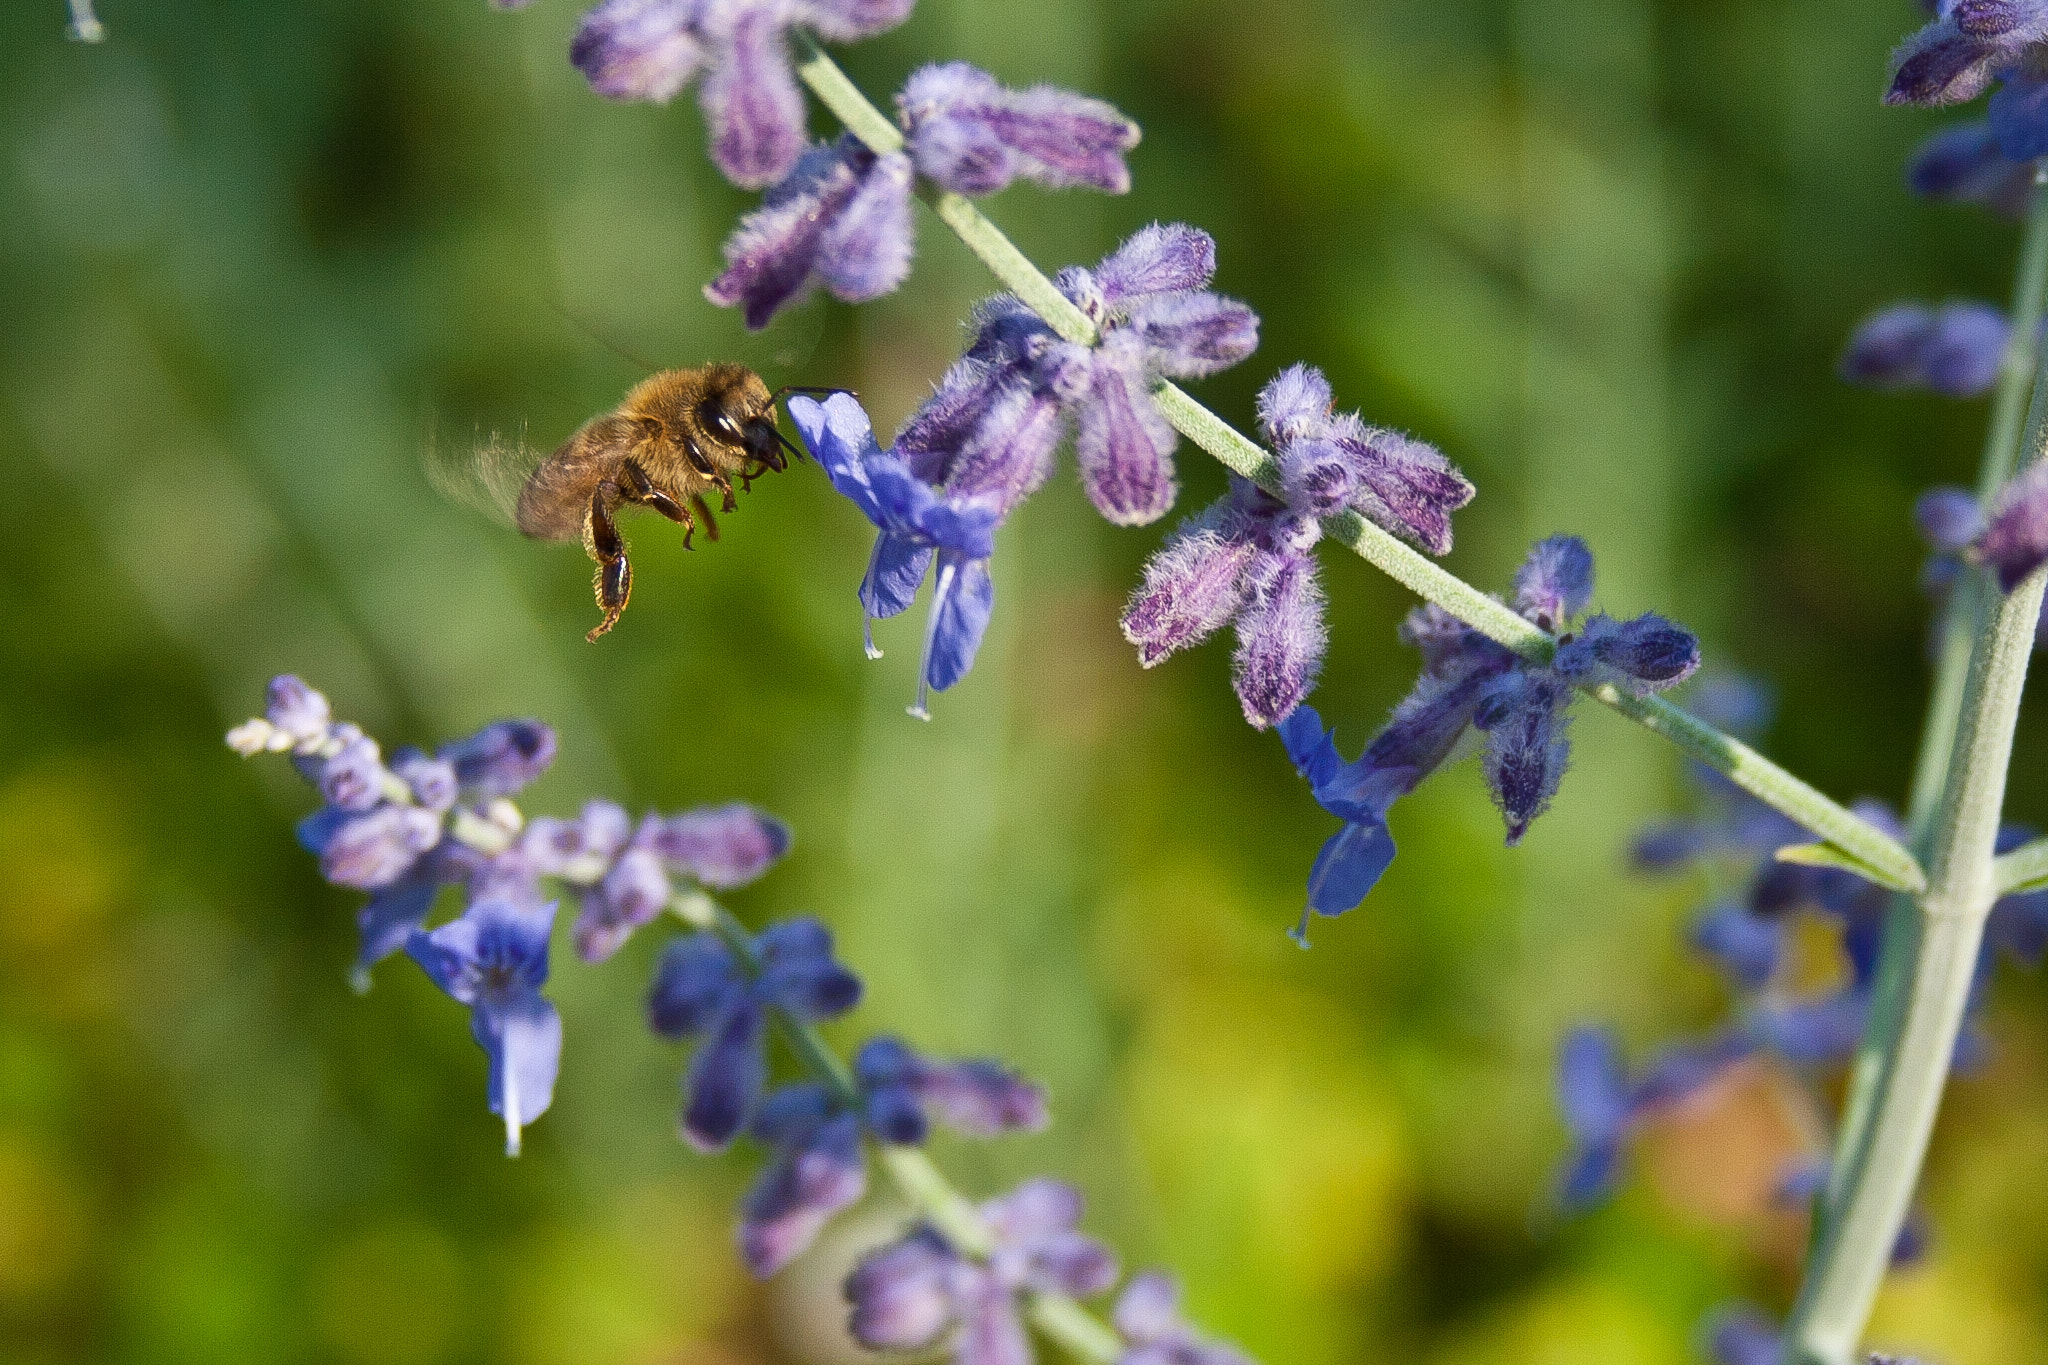 Photograph Flight of the Bumblebee by Amy Nicklas on 500px